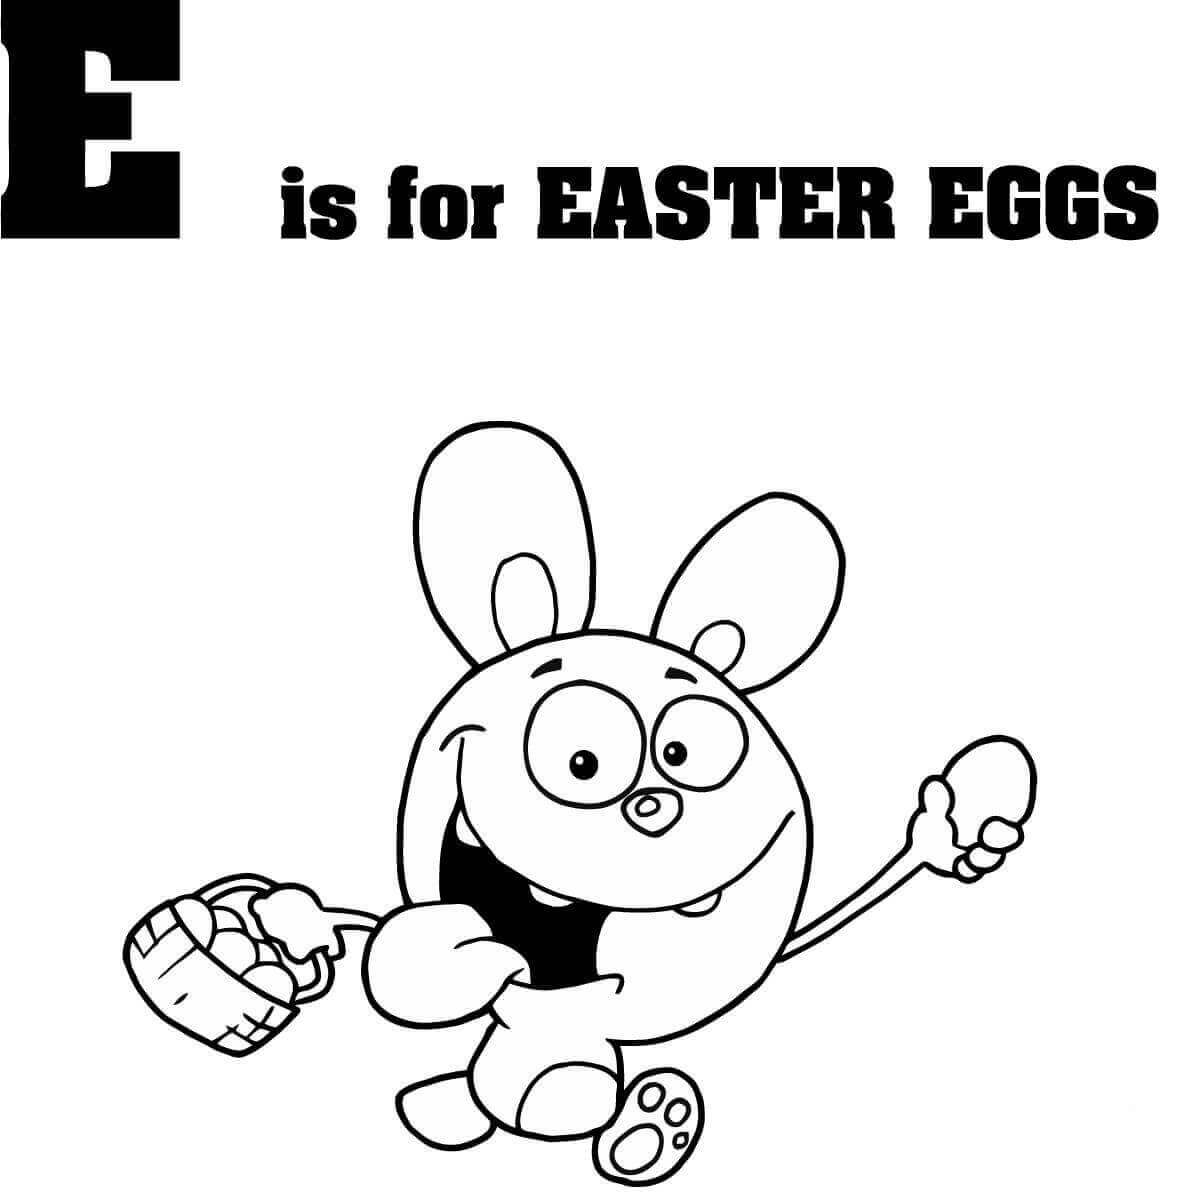 E is for Easter eggs